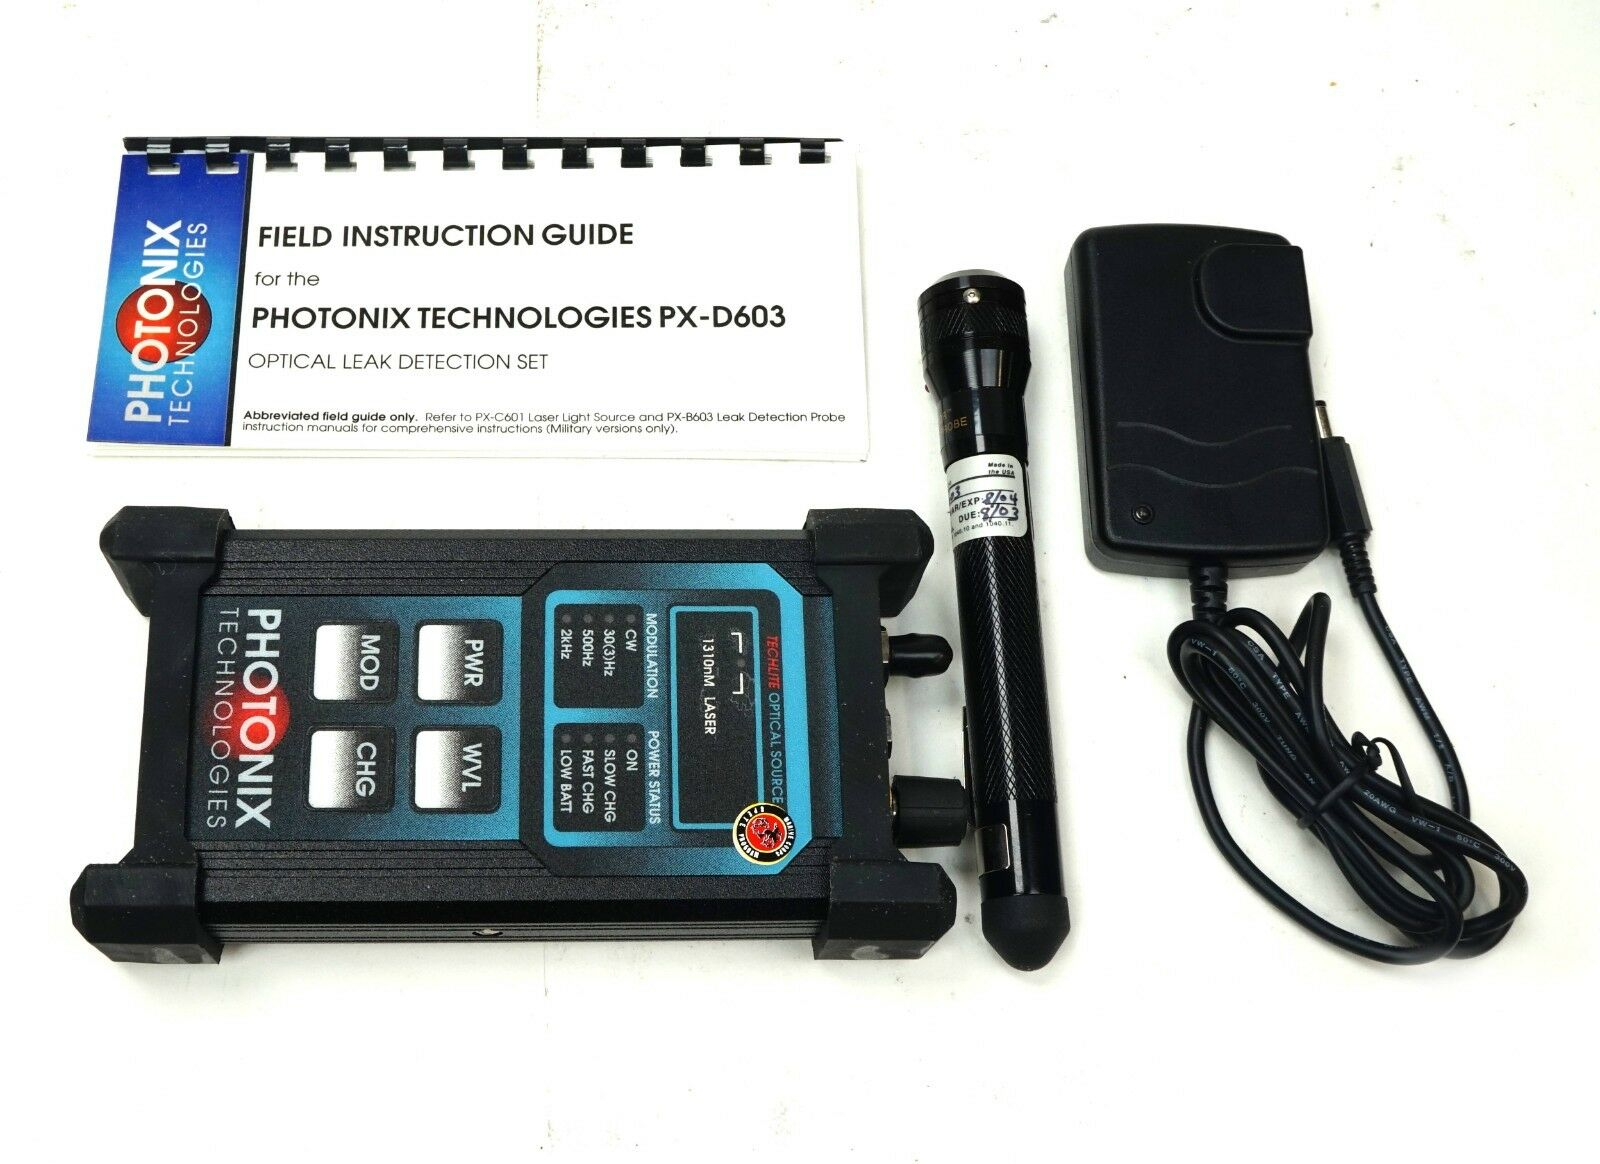 FIBER OPTIC TESTING KIT